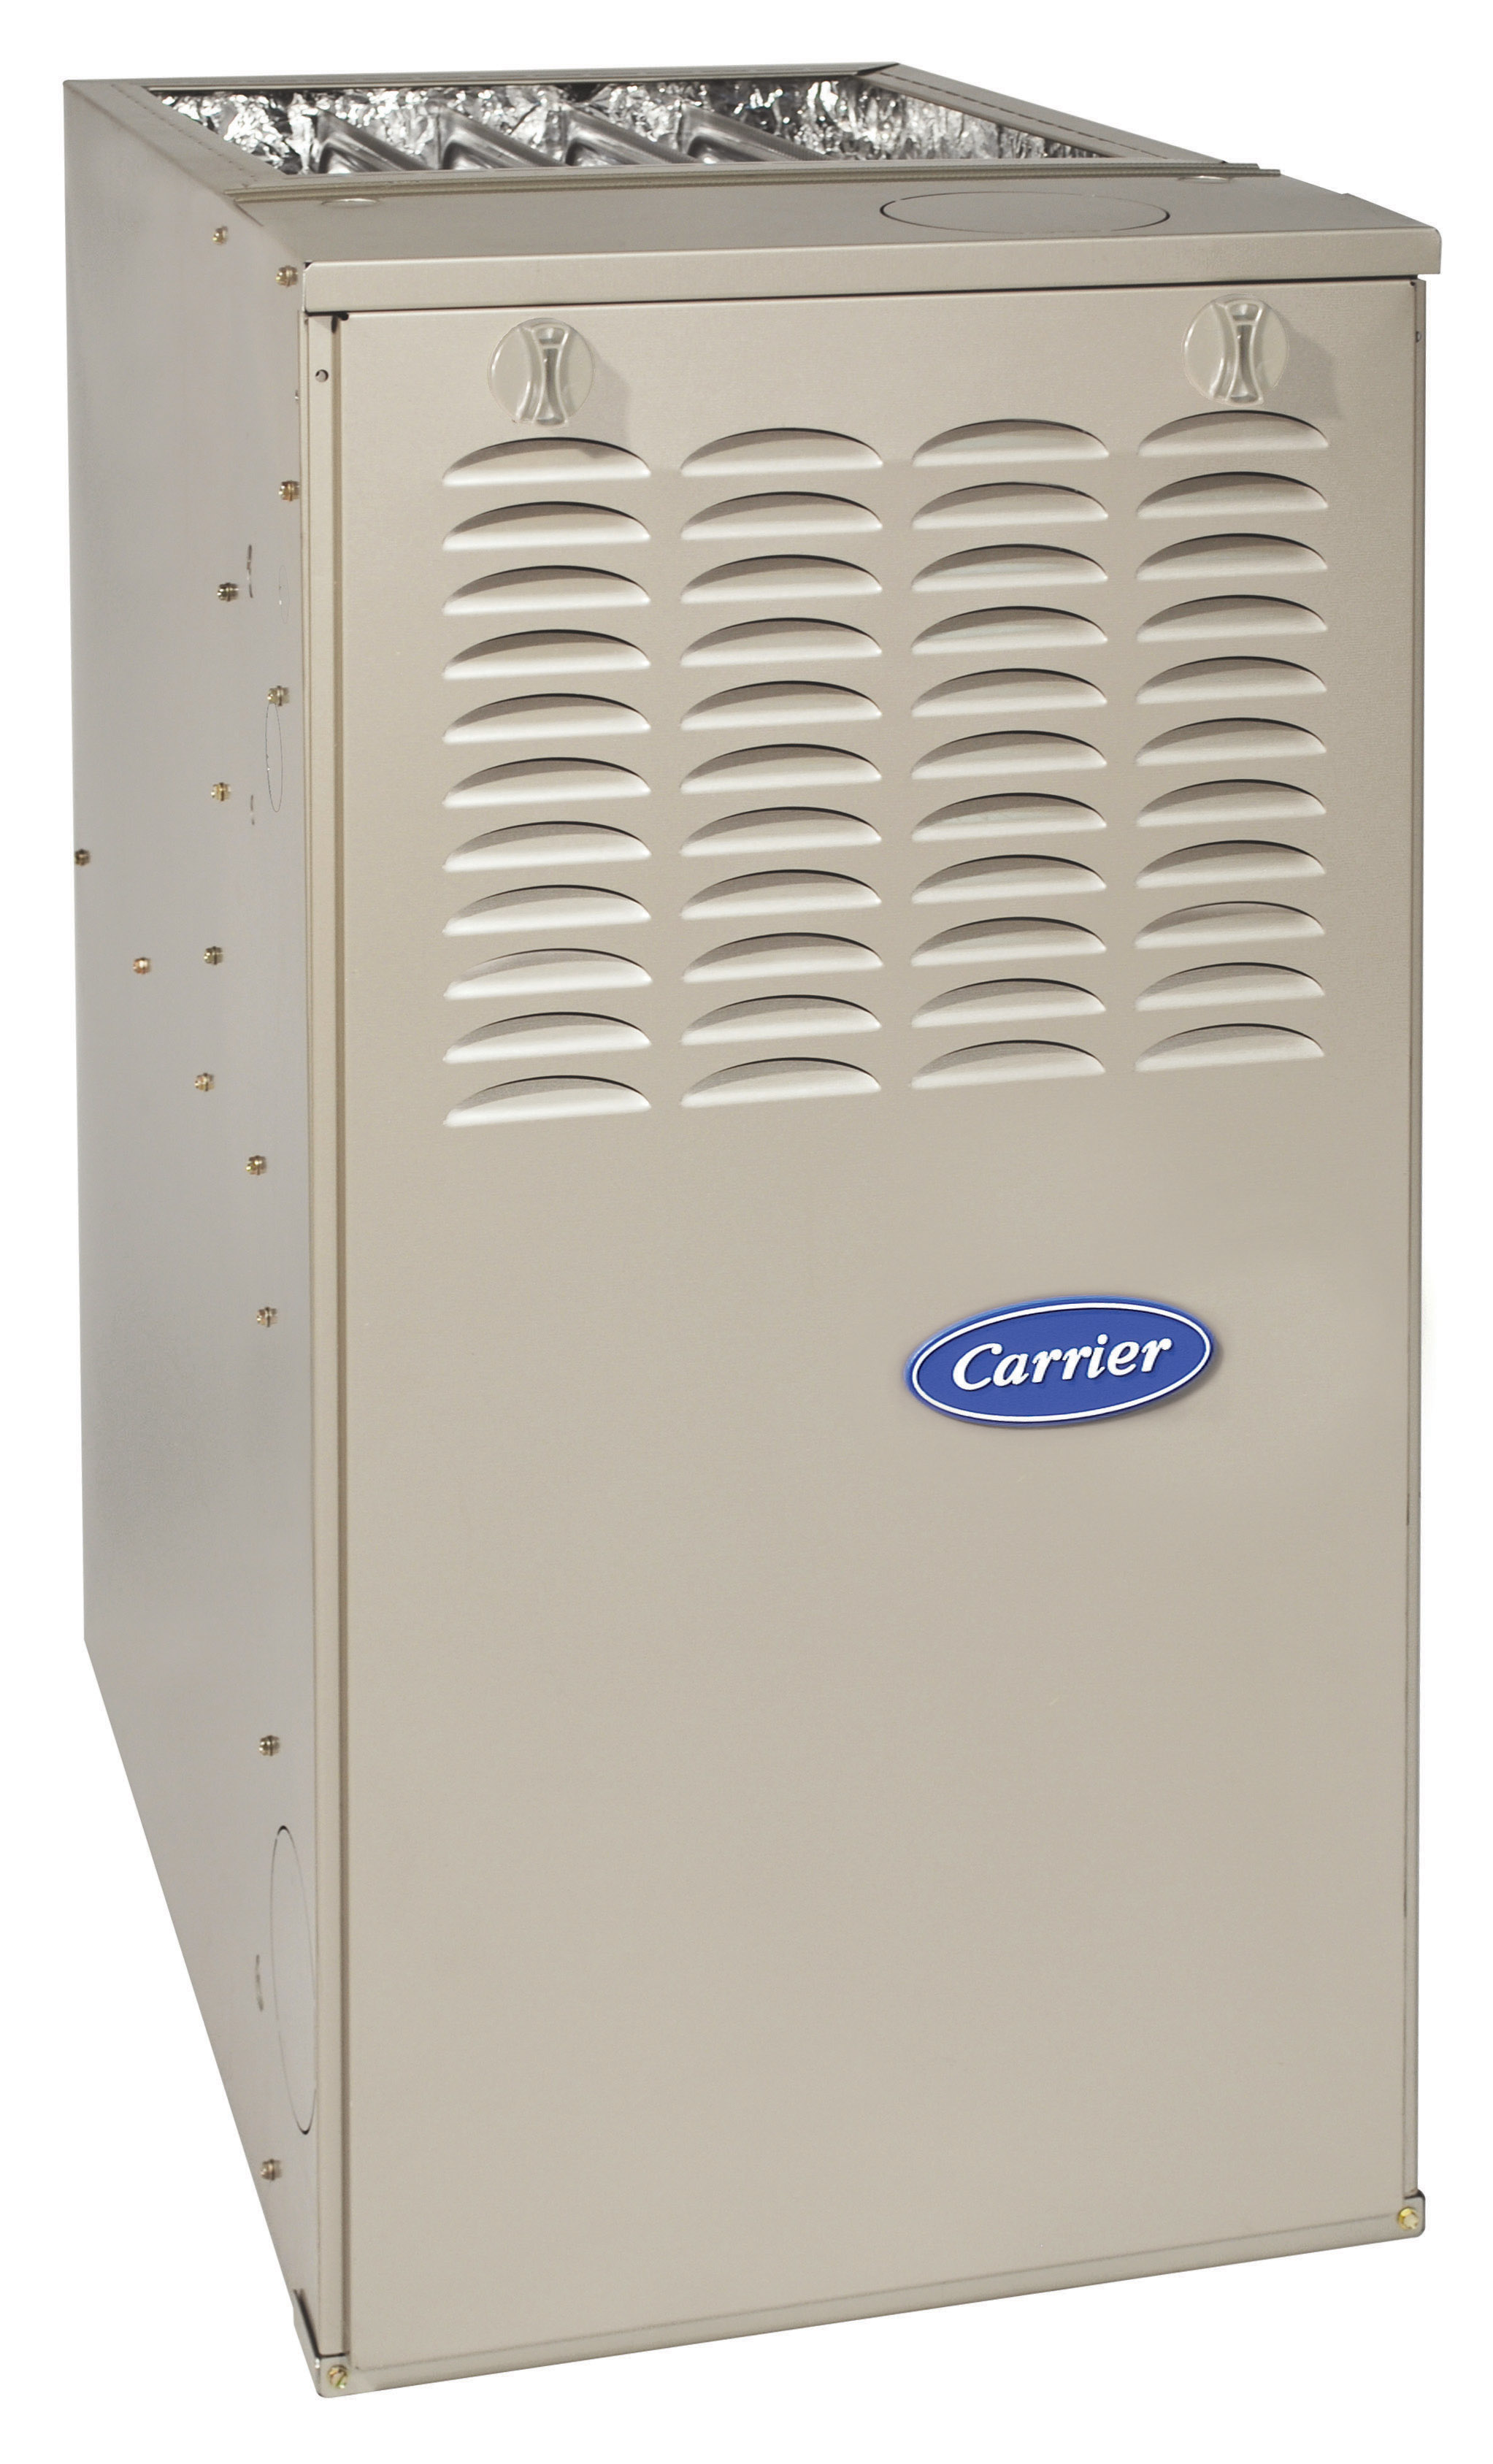 How long does a gas furnace last?